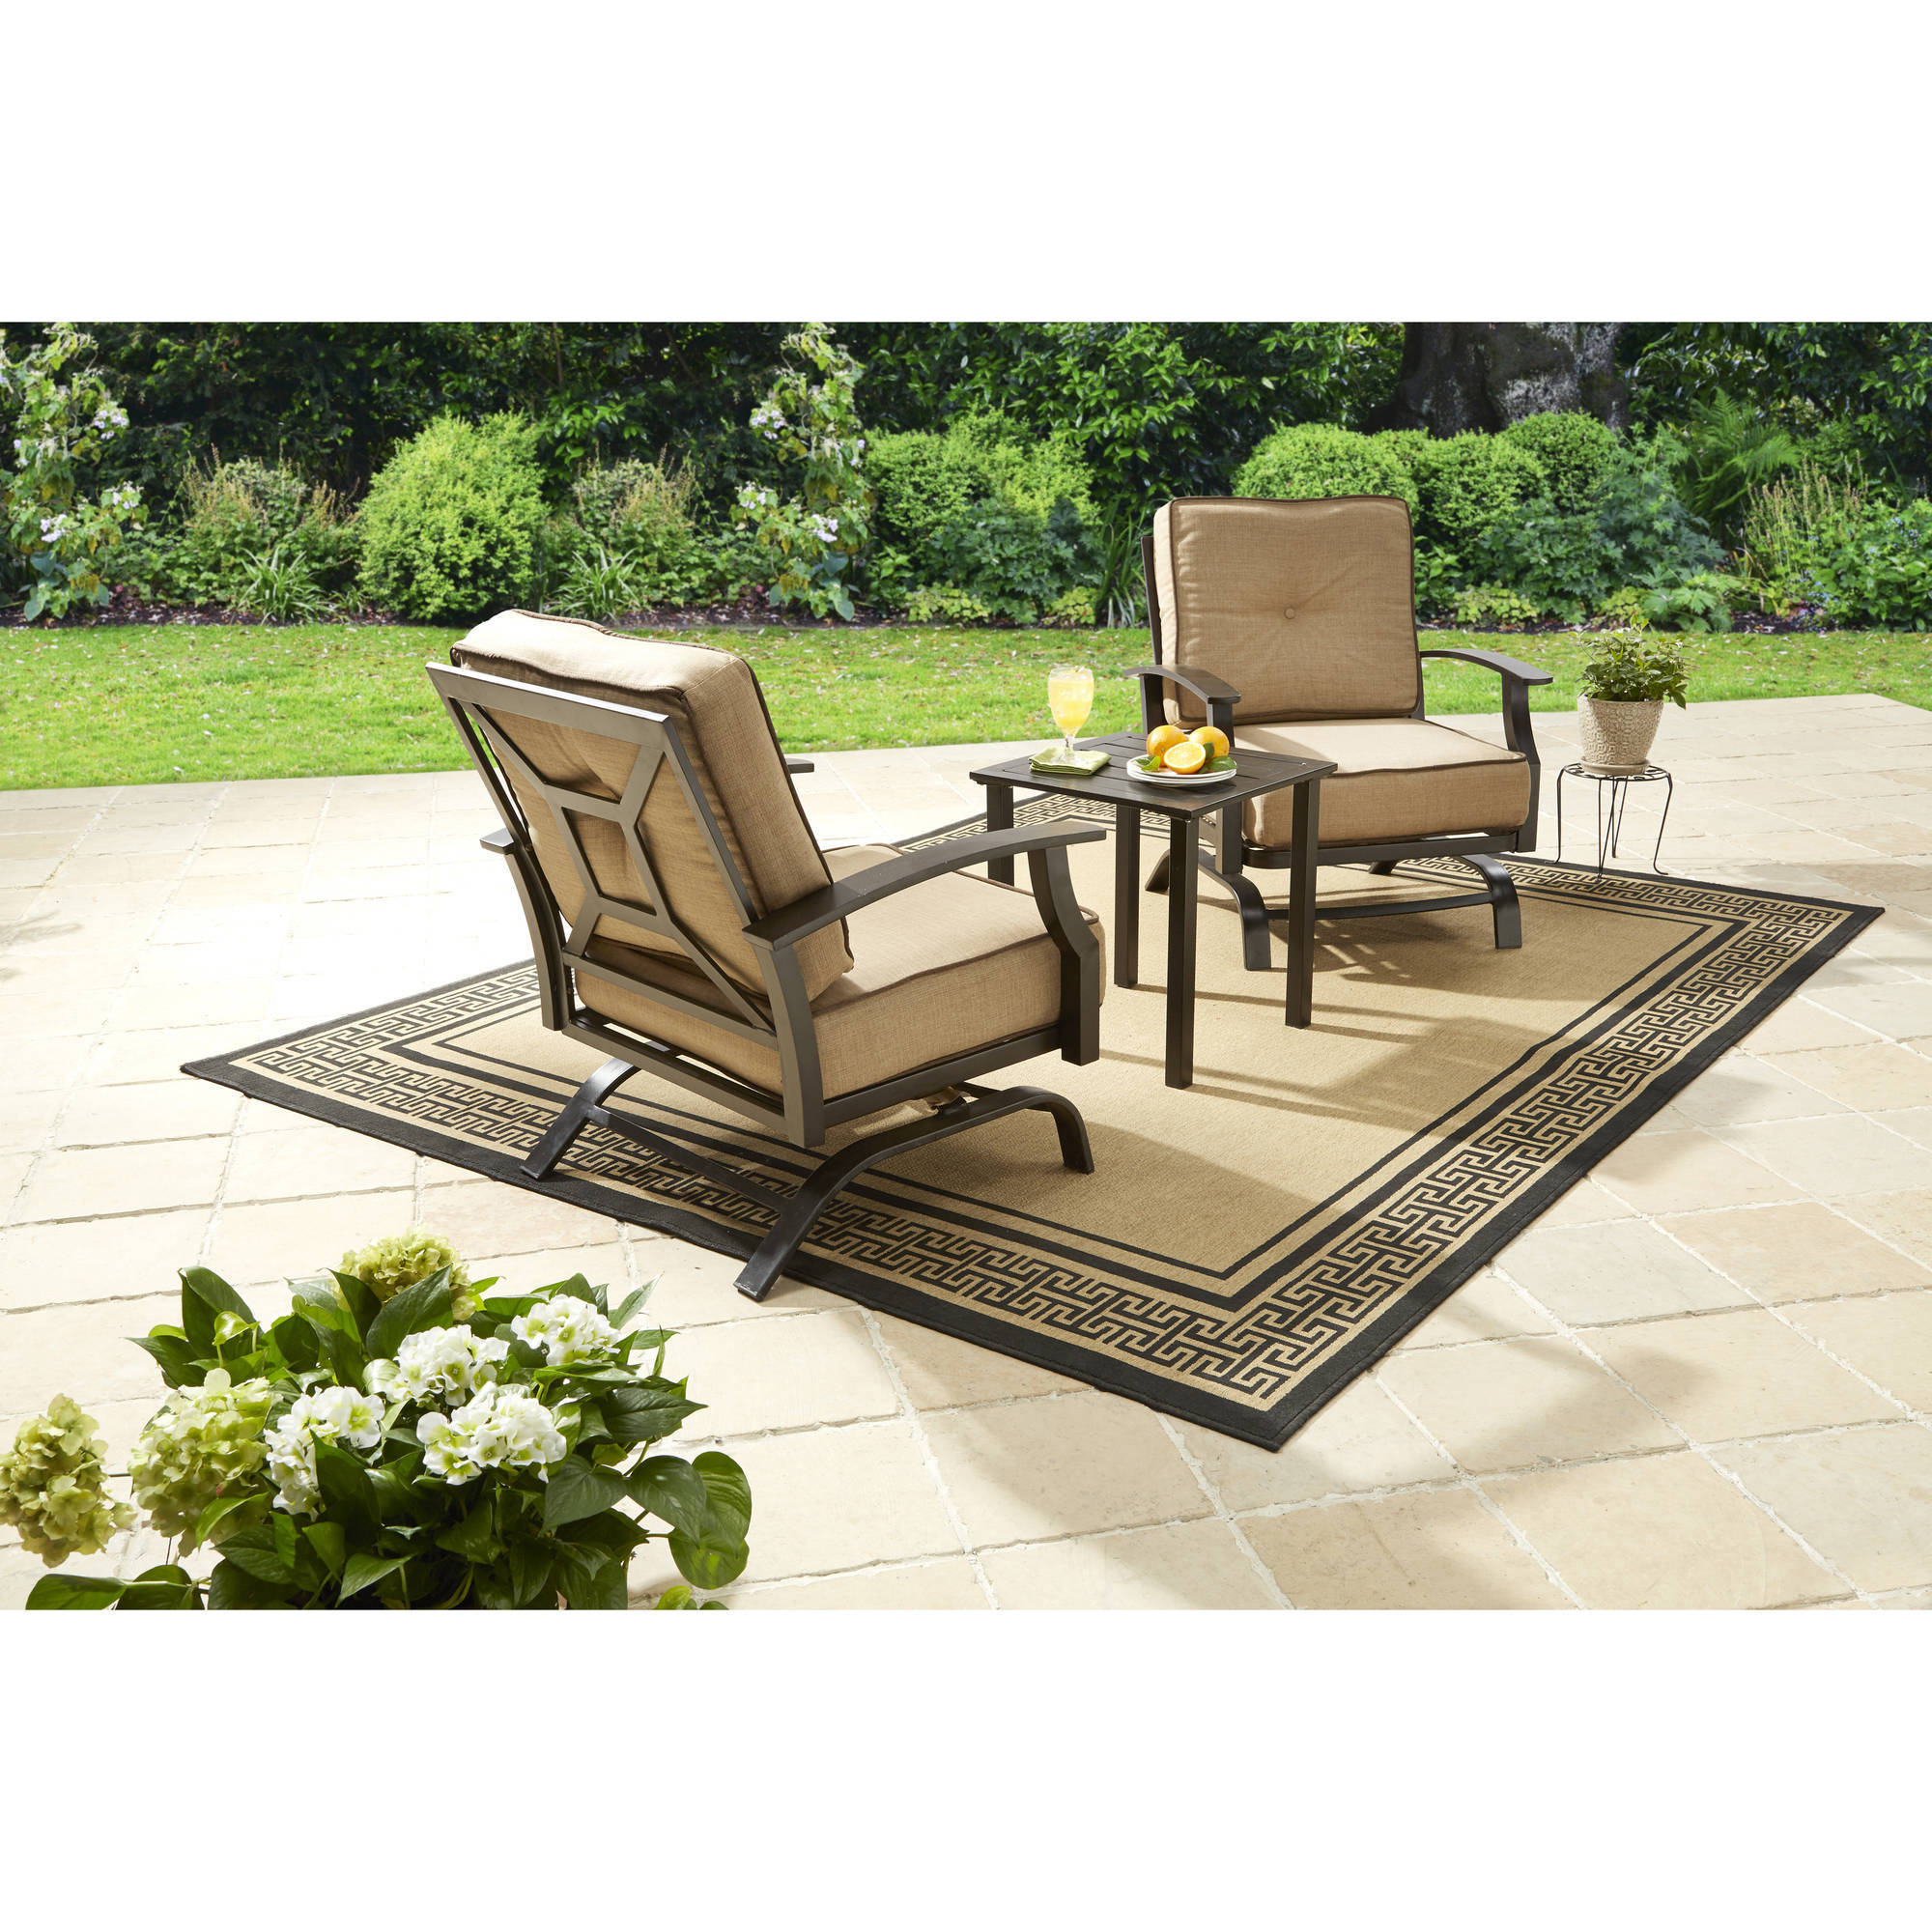 Better Homes And Gardens Carter Hills 3 Piece Outdoor Chat Set, Seats 2